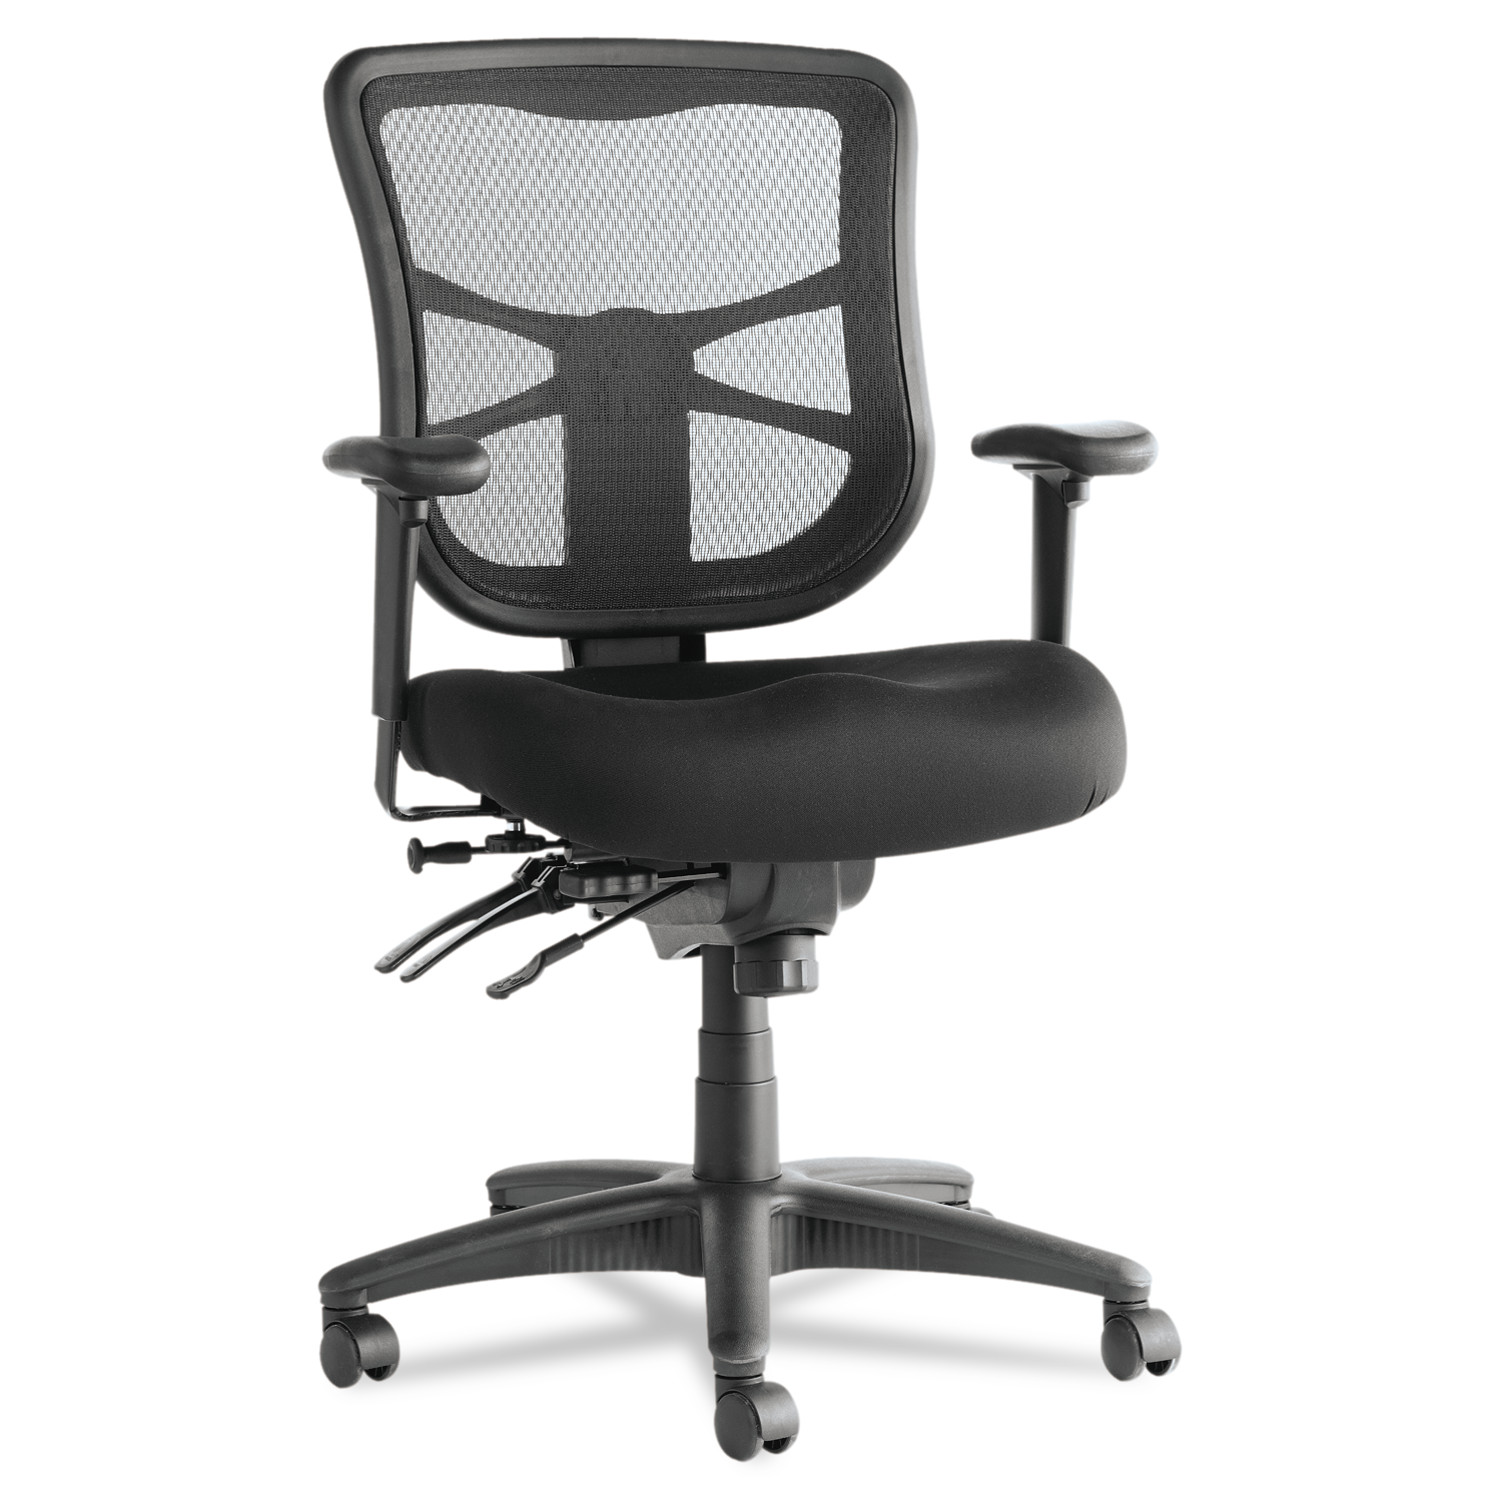 Alera Alera Elusion Series Mesh Mid-Back Multifunction Chair, Black by ALERA